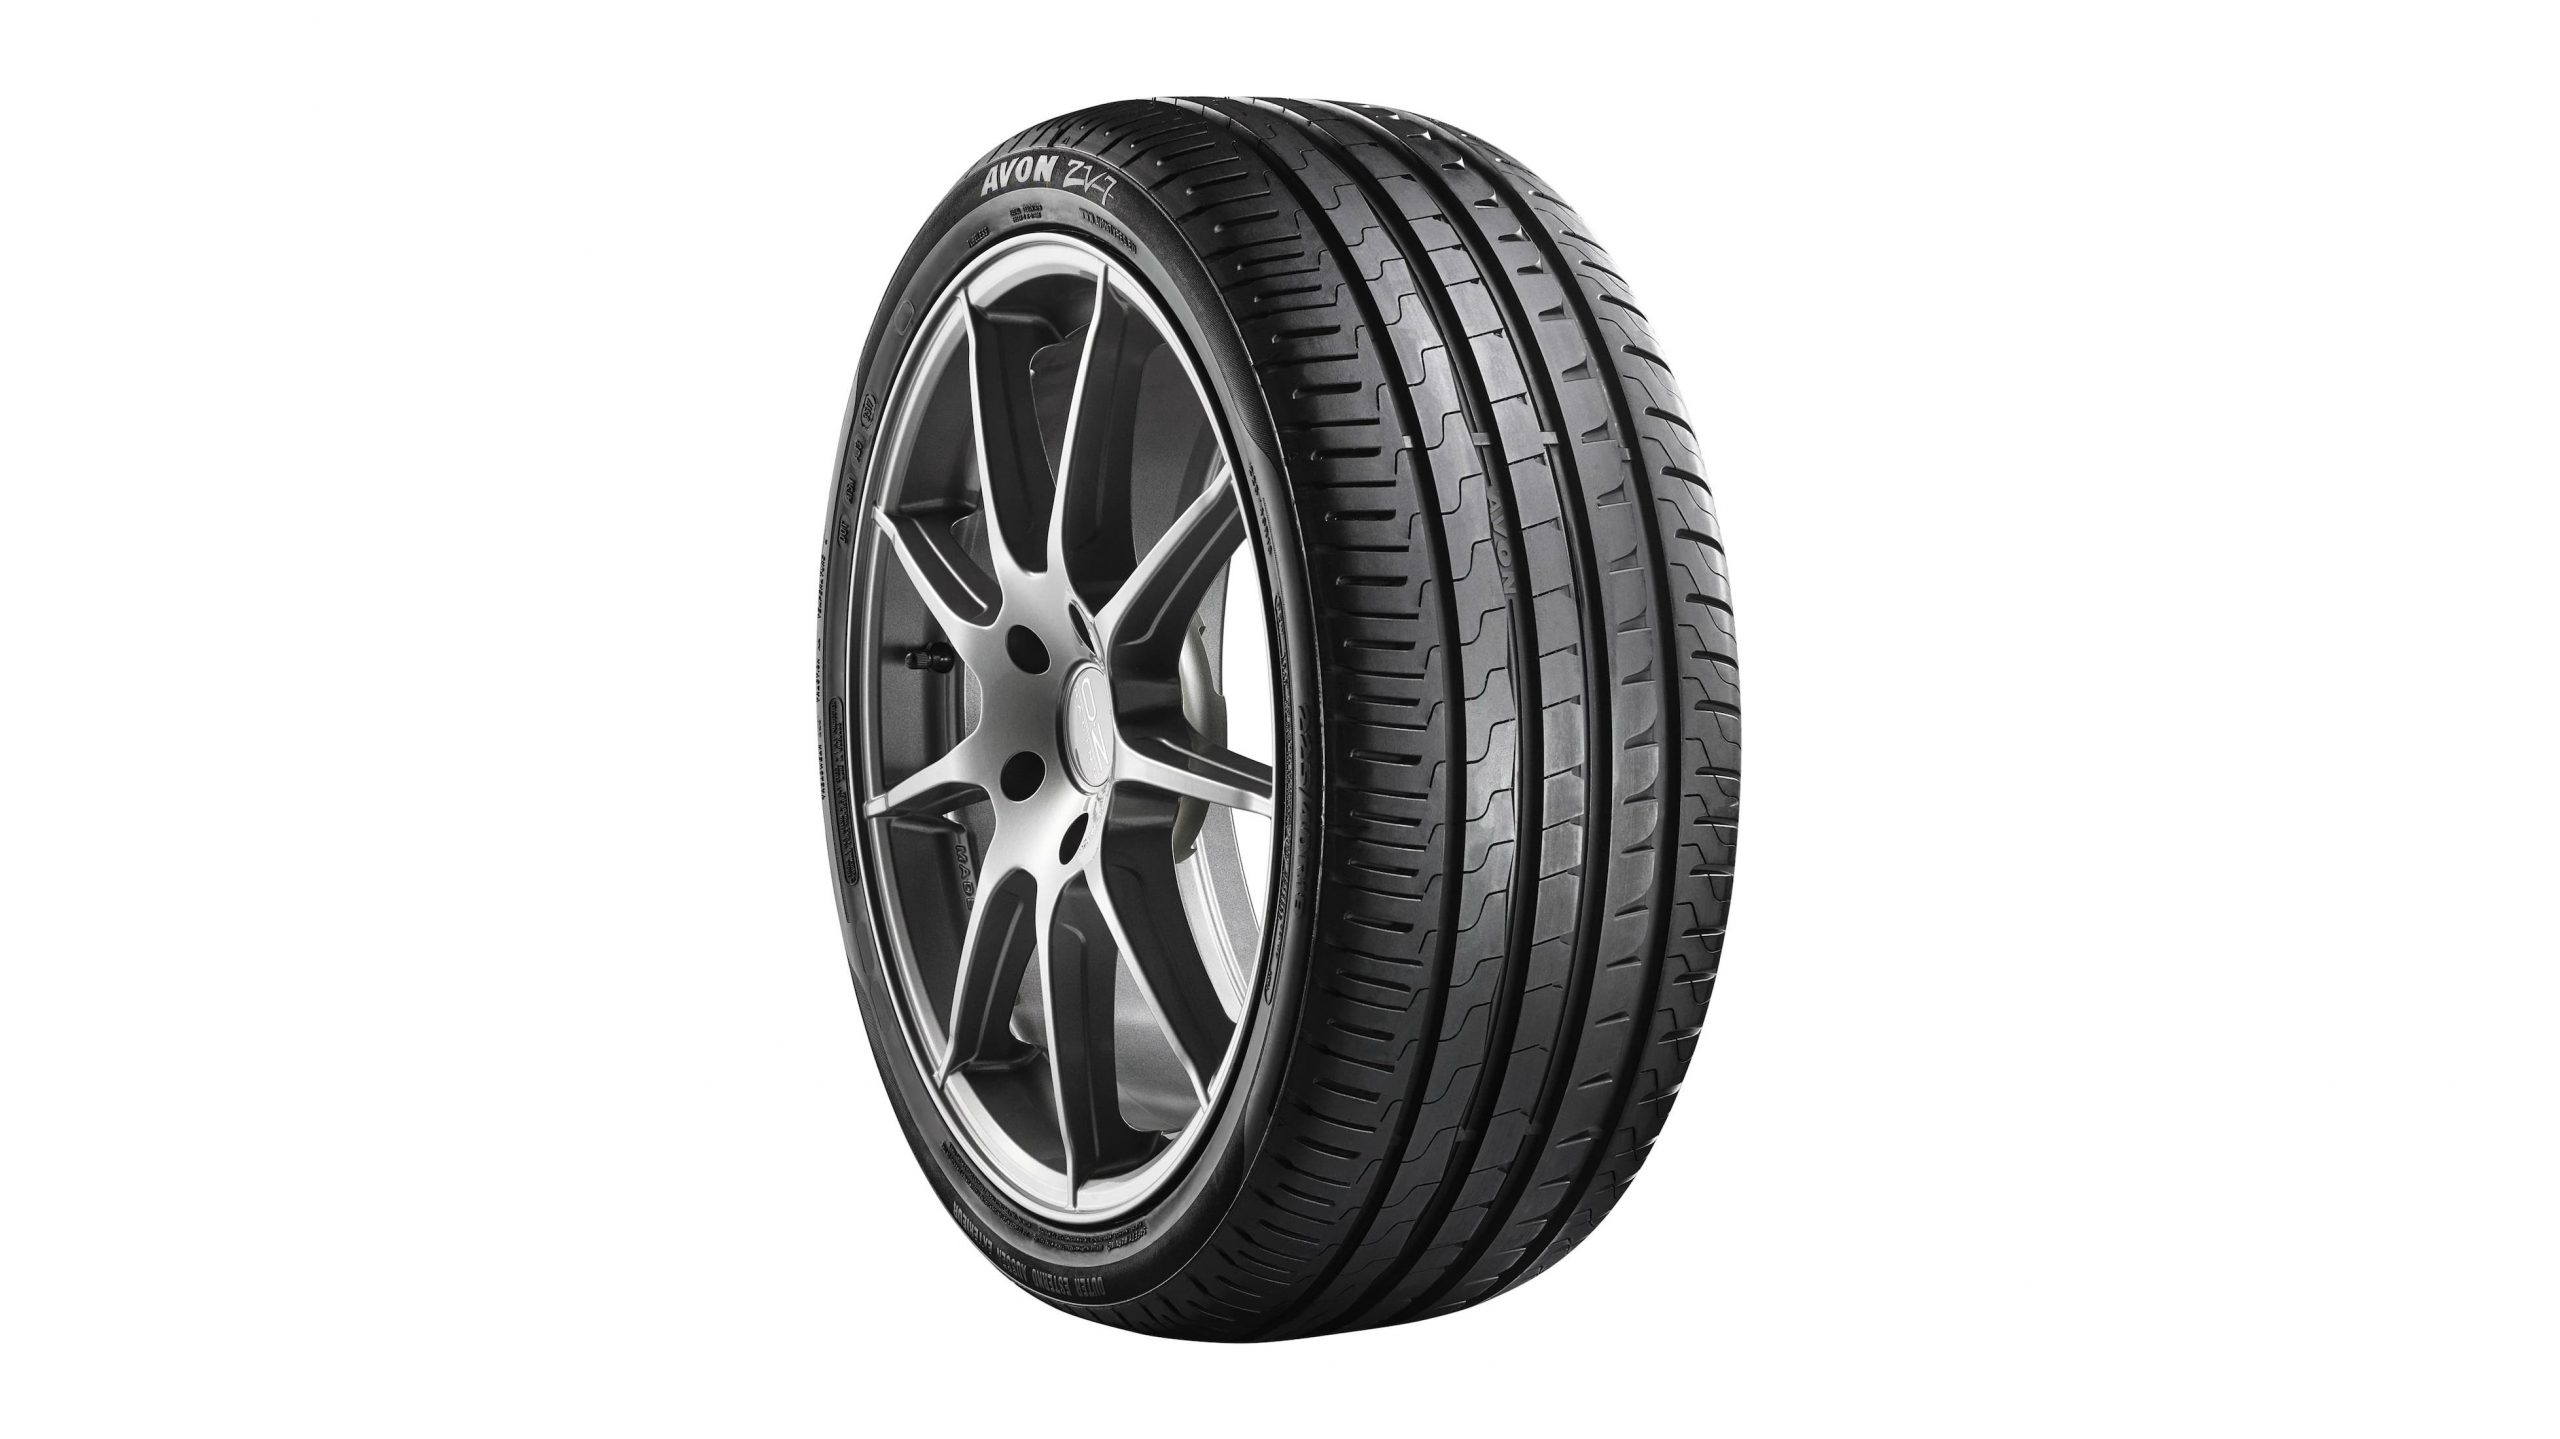 Cheap Dunlop Tyres For Your Car